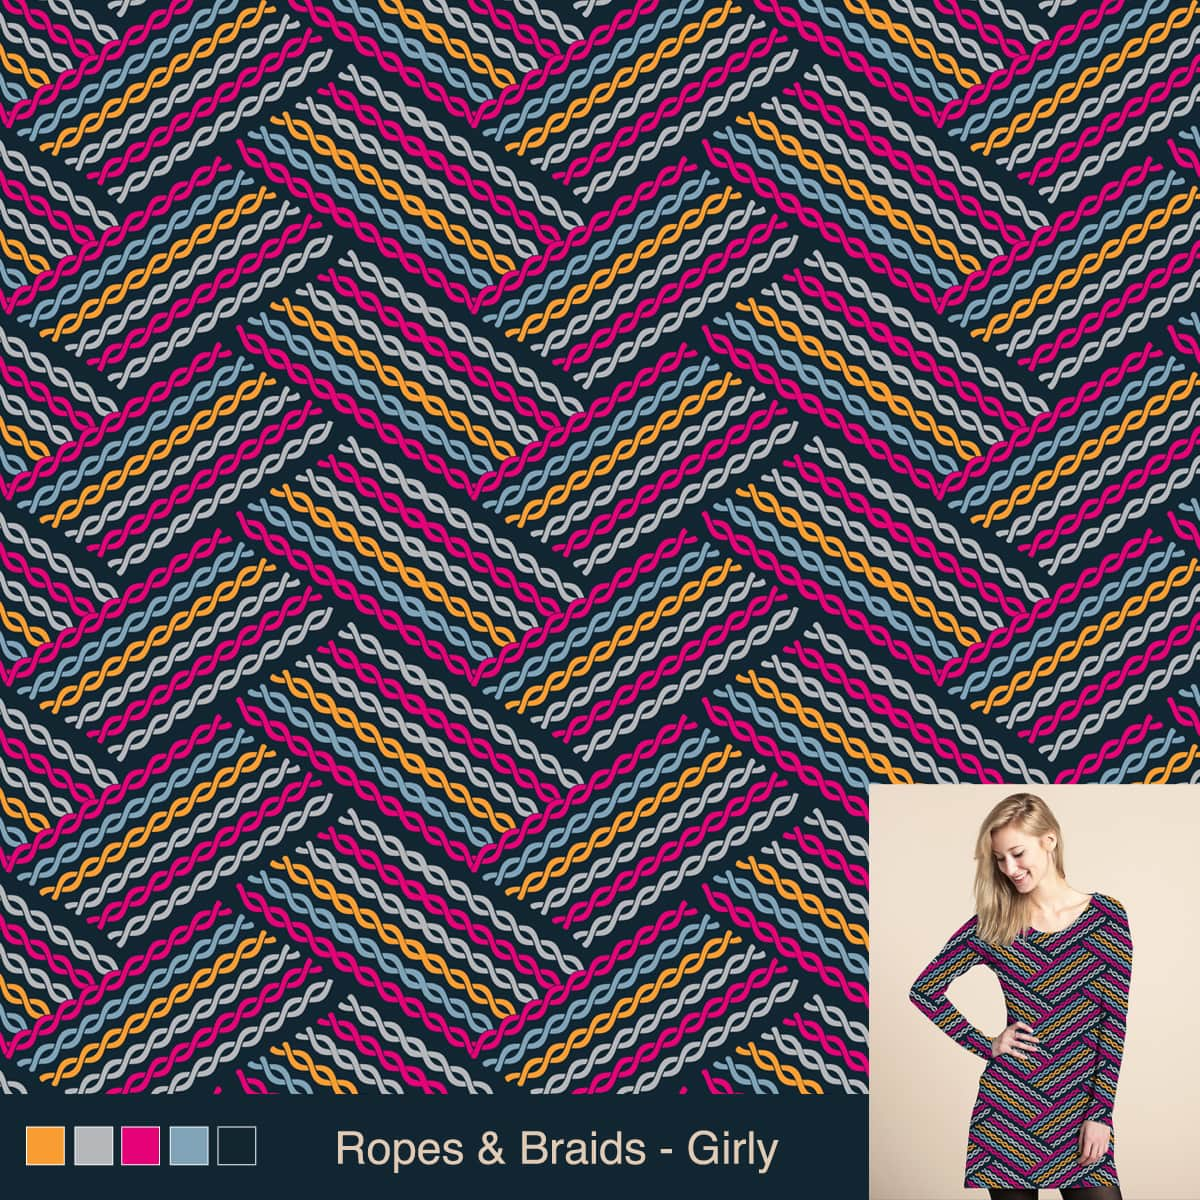 Ropes and Braids (Girly) by rhobdesigns on Threadless